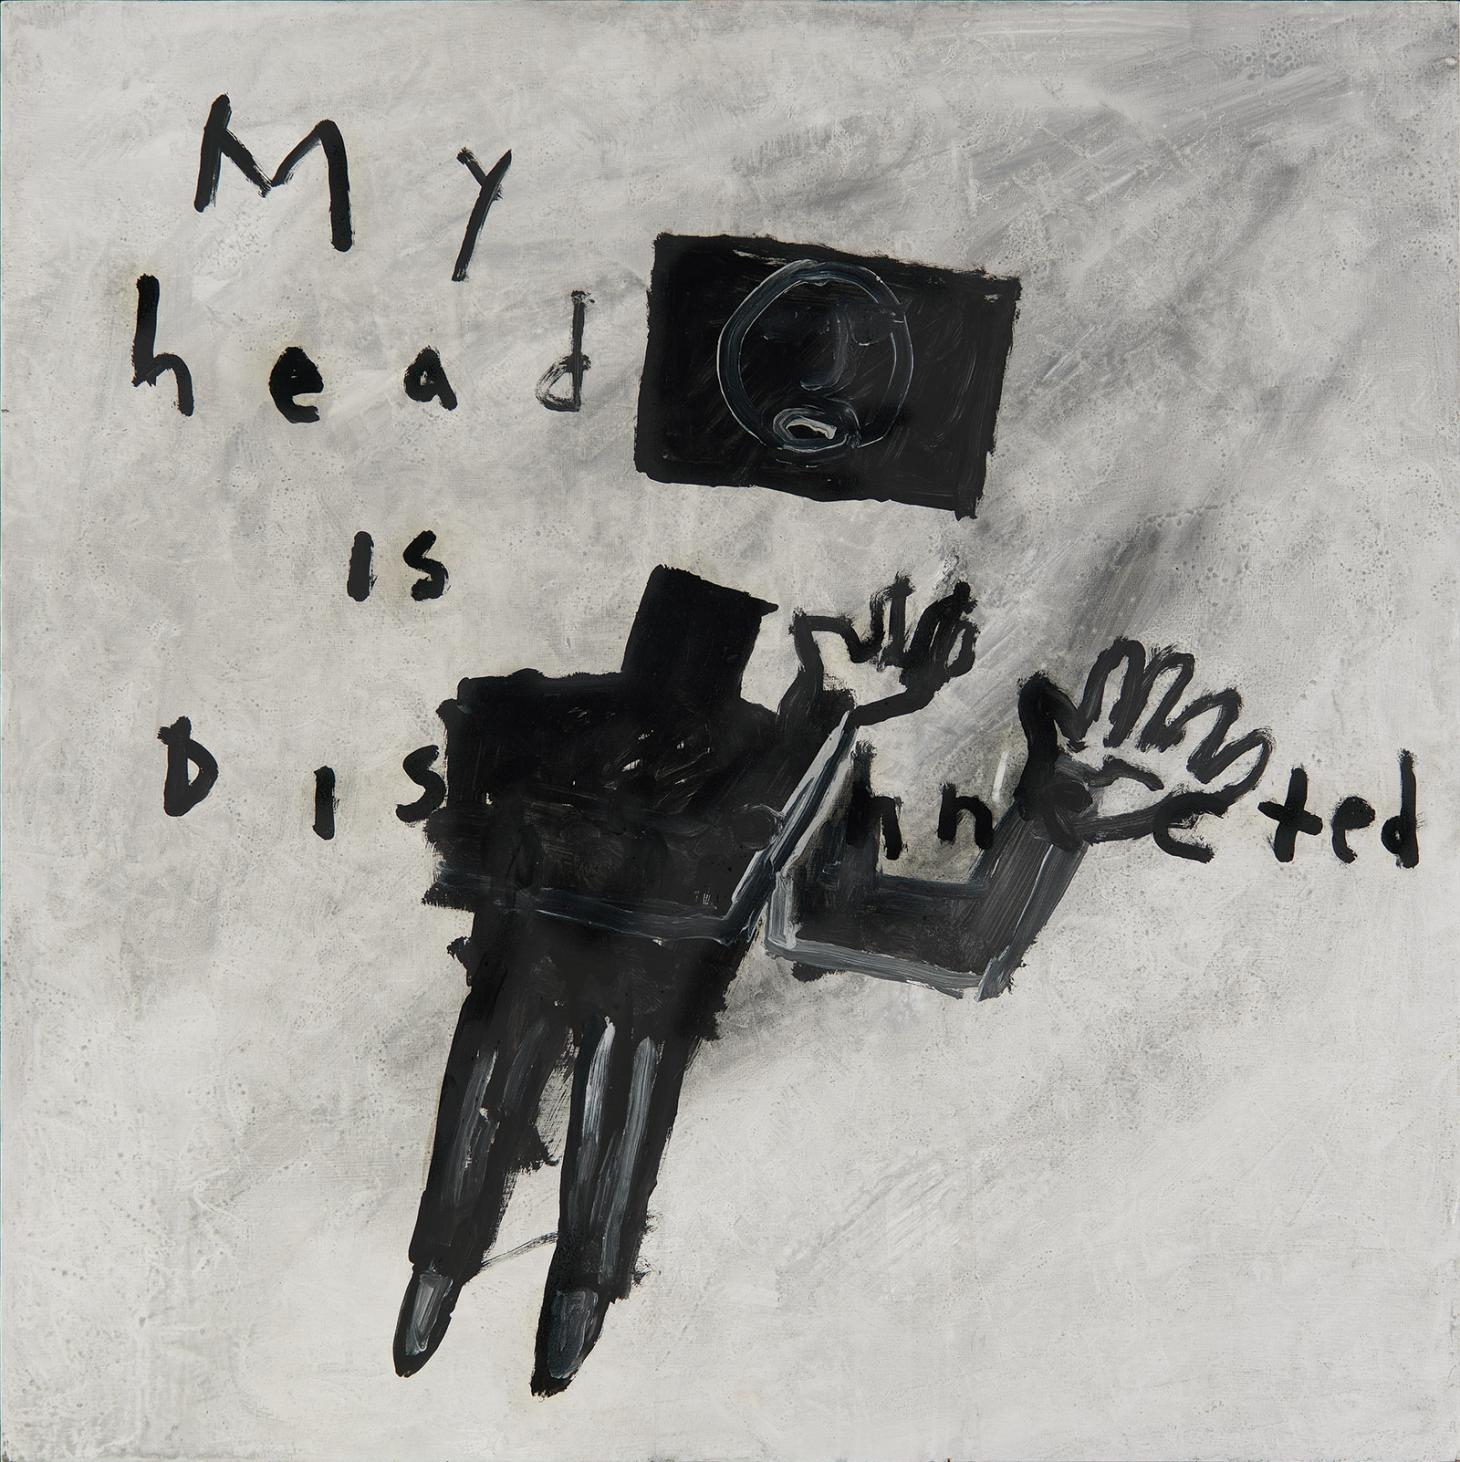 My Head Is Disconnected, 1994, by David Lynch